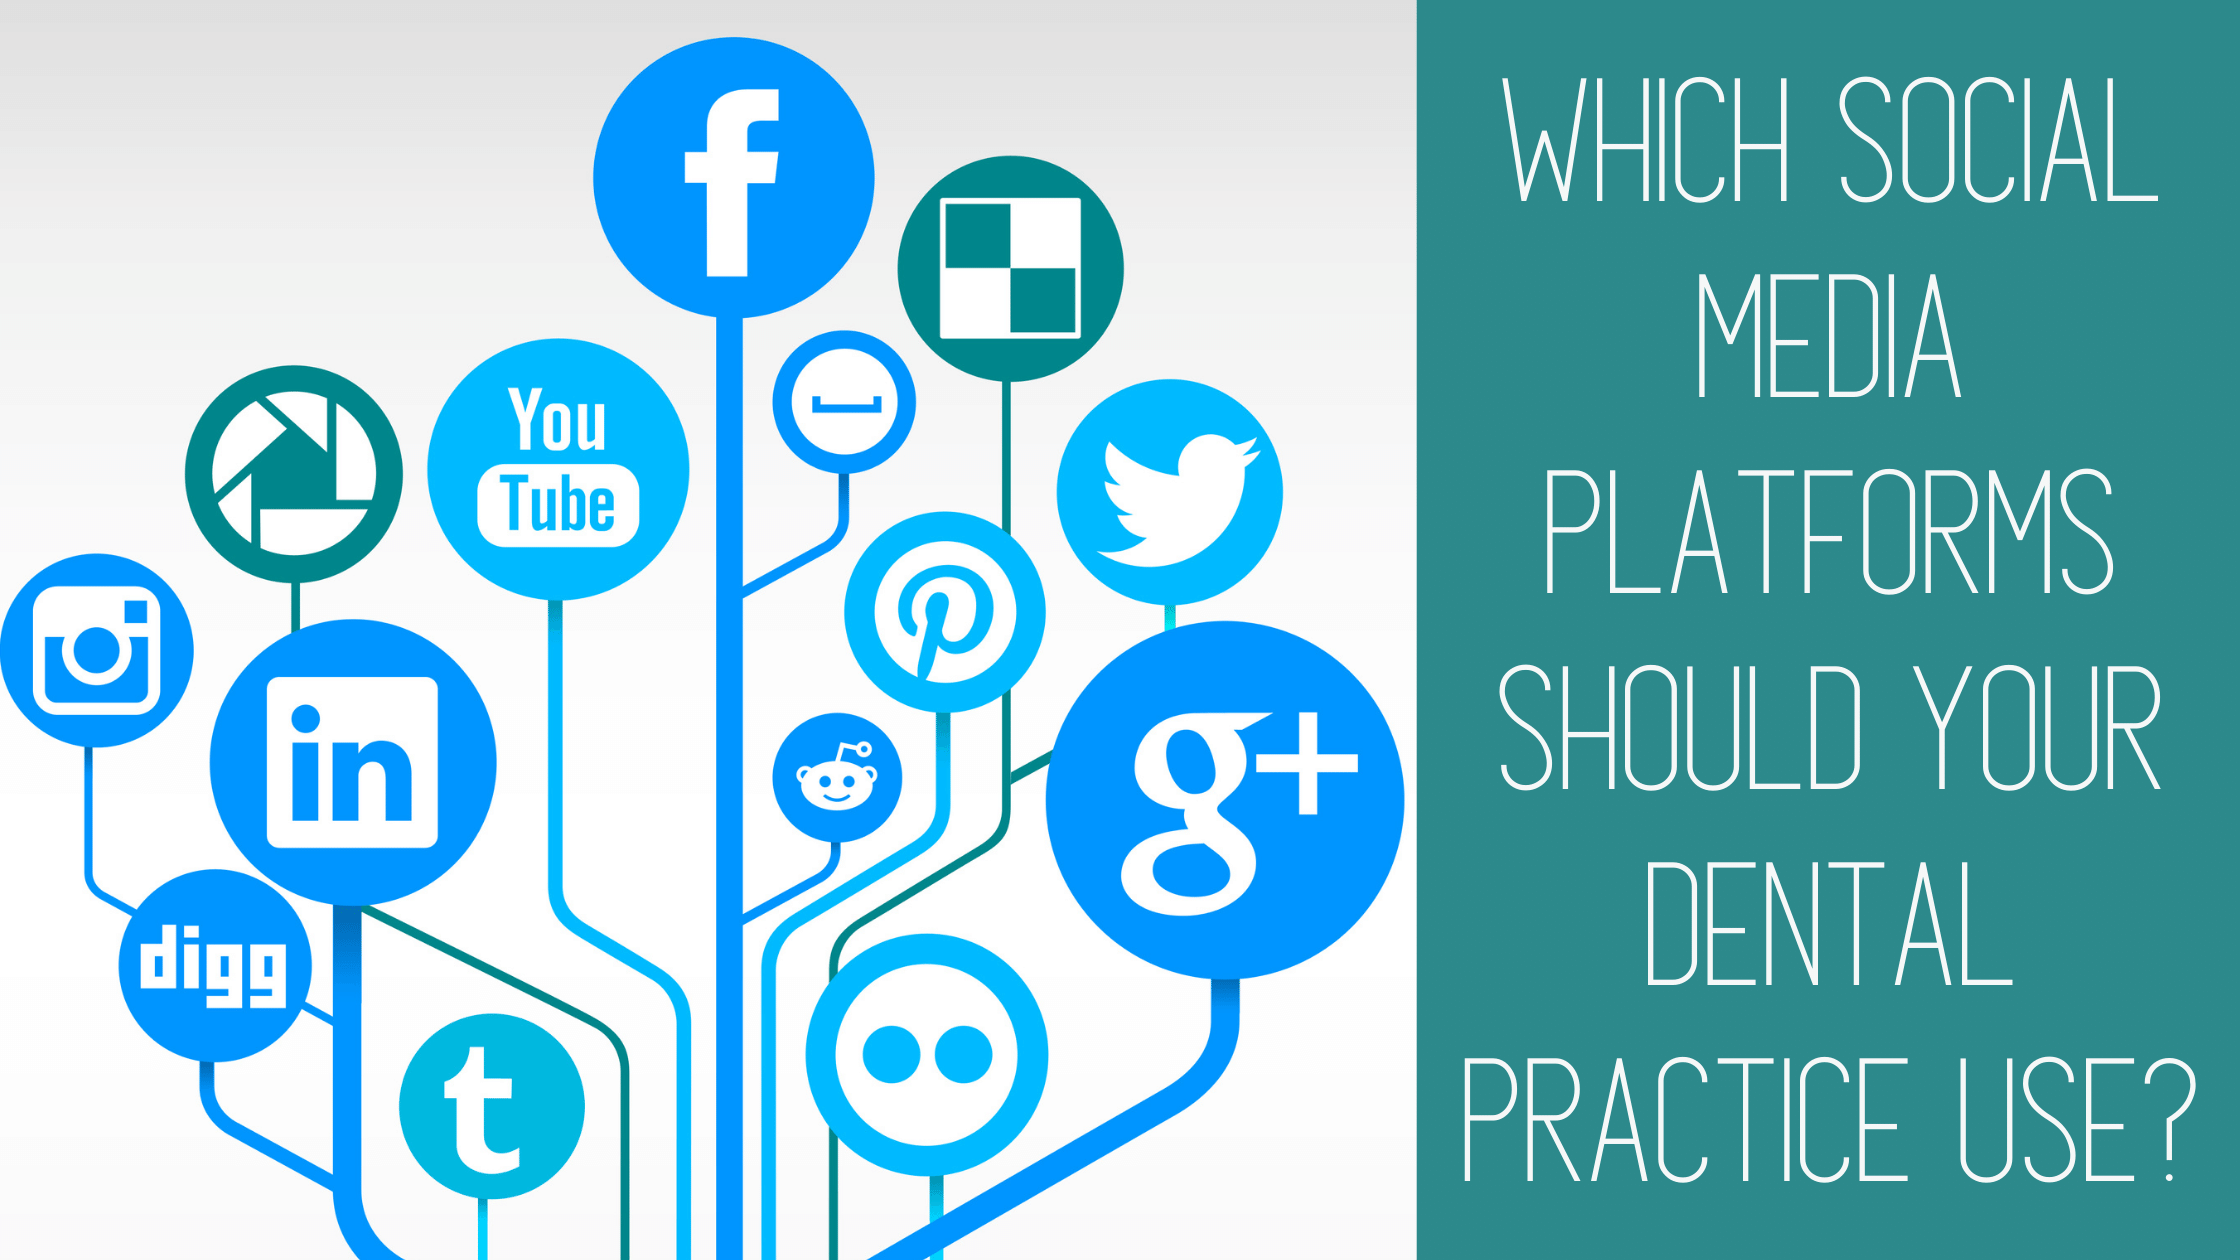 Which Social Media Platforms Should Your Dental Practice Use?